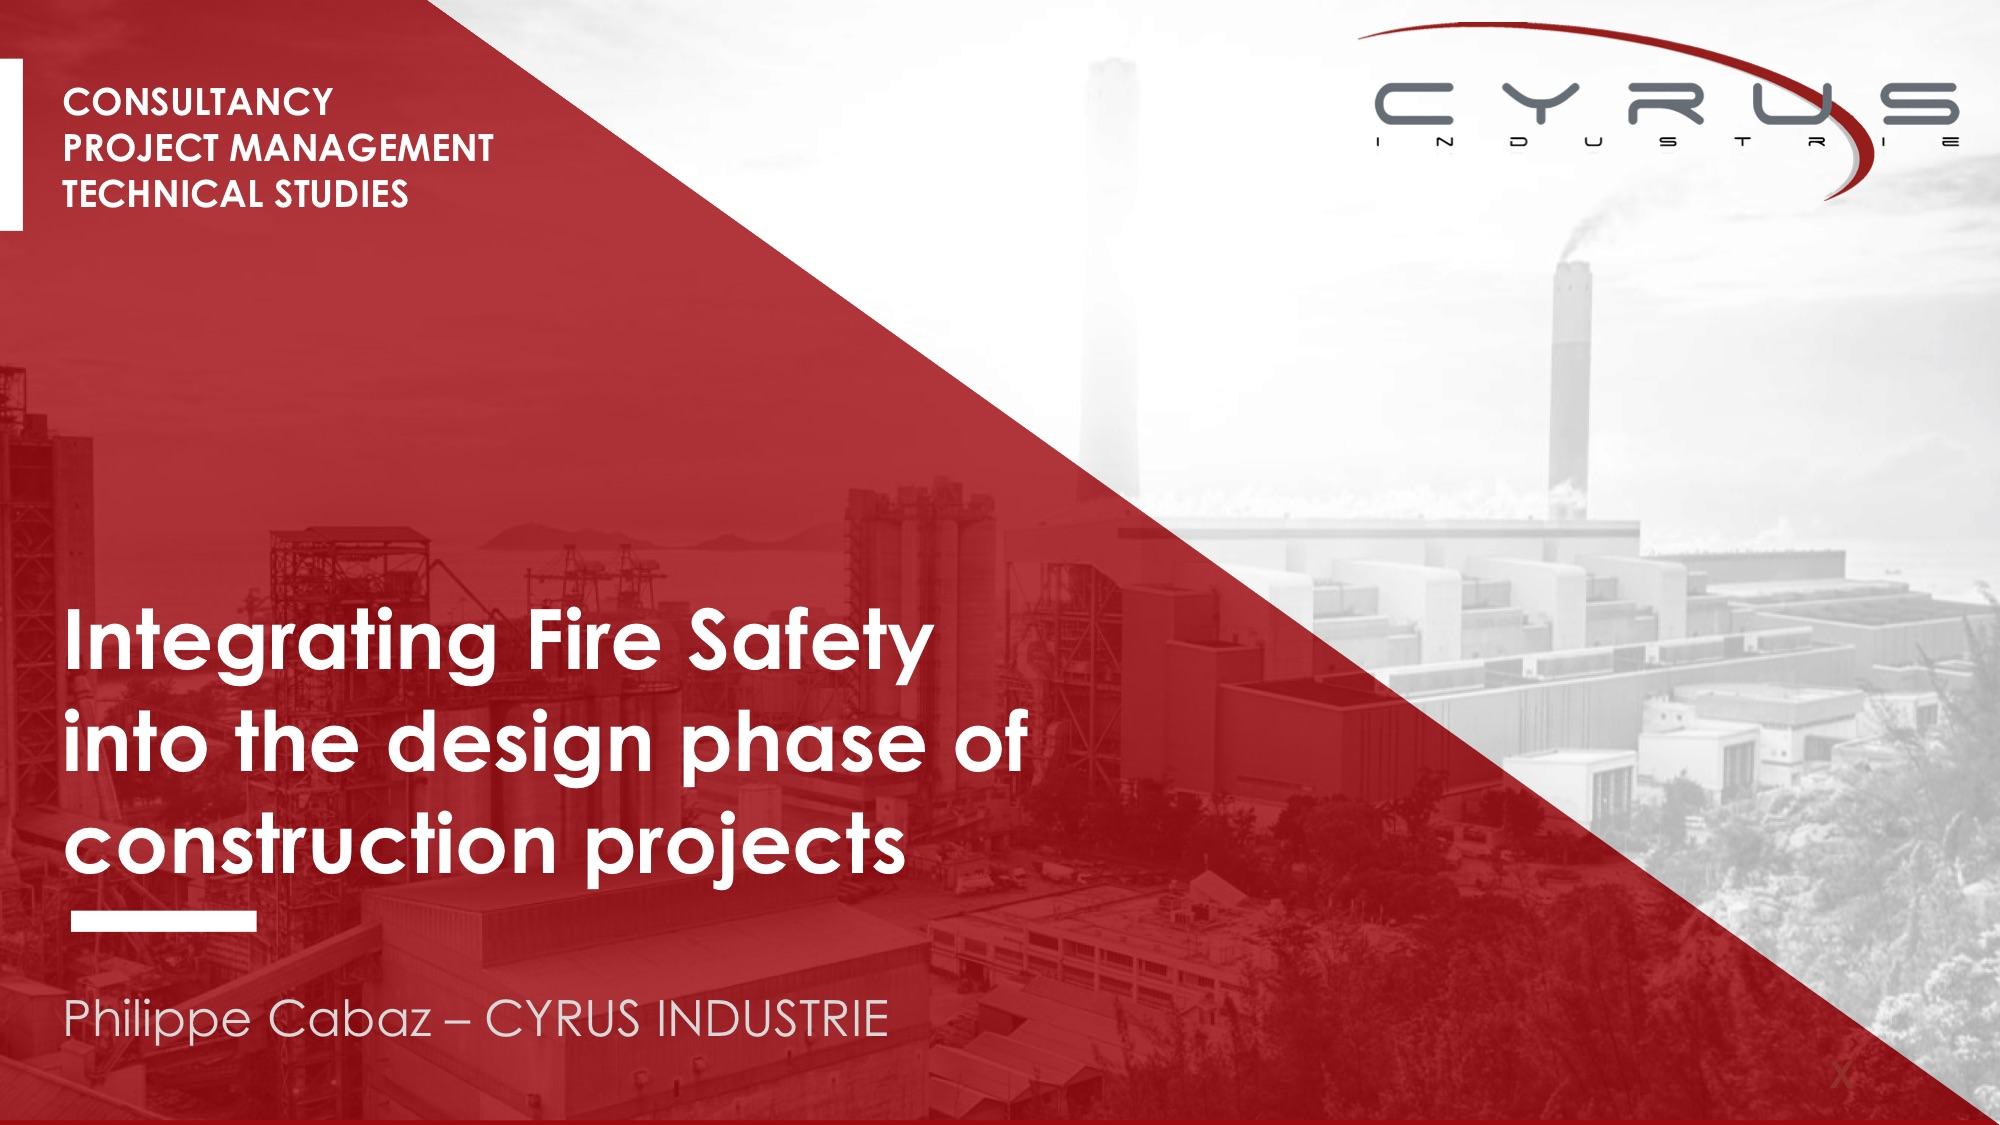 Integrating Fire Safety into the design phase of construction projects